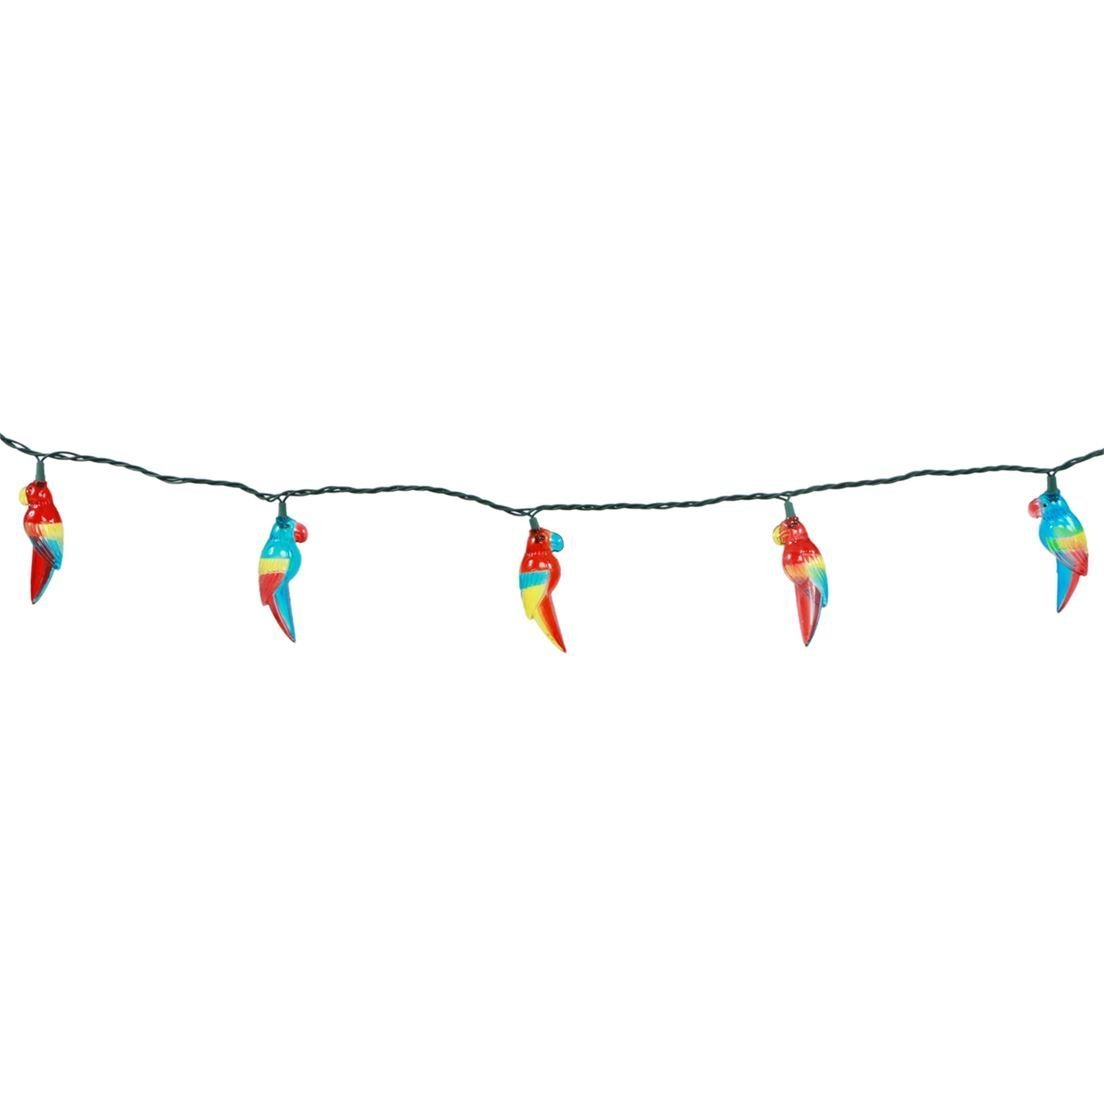 DEI Parrot Novelty Indoor Outdoor String Lights 8.5 Feet 10 Lights